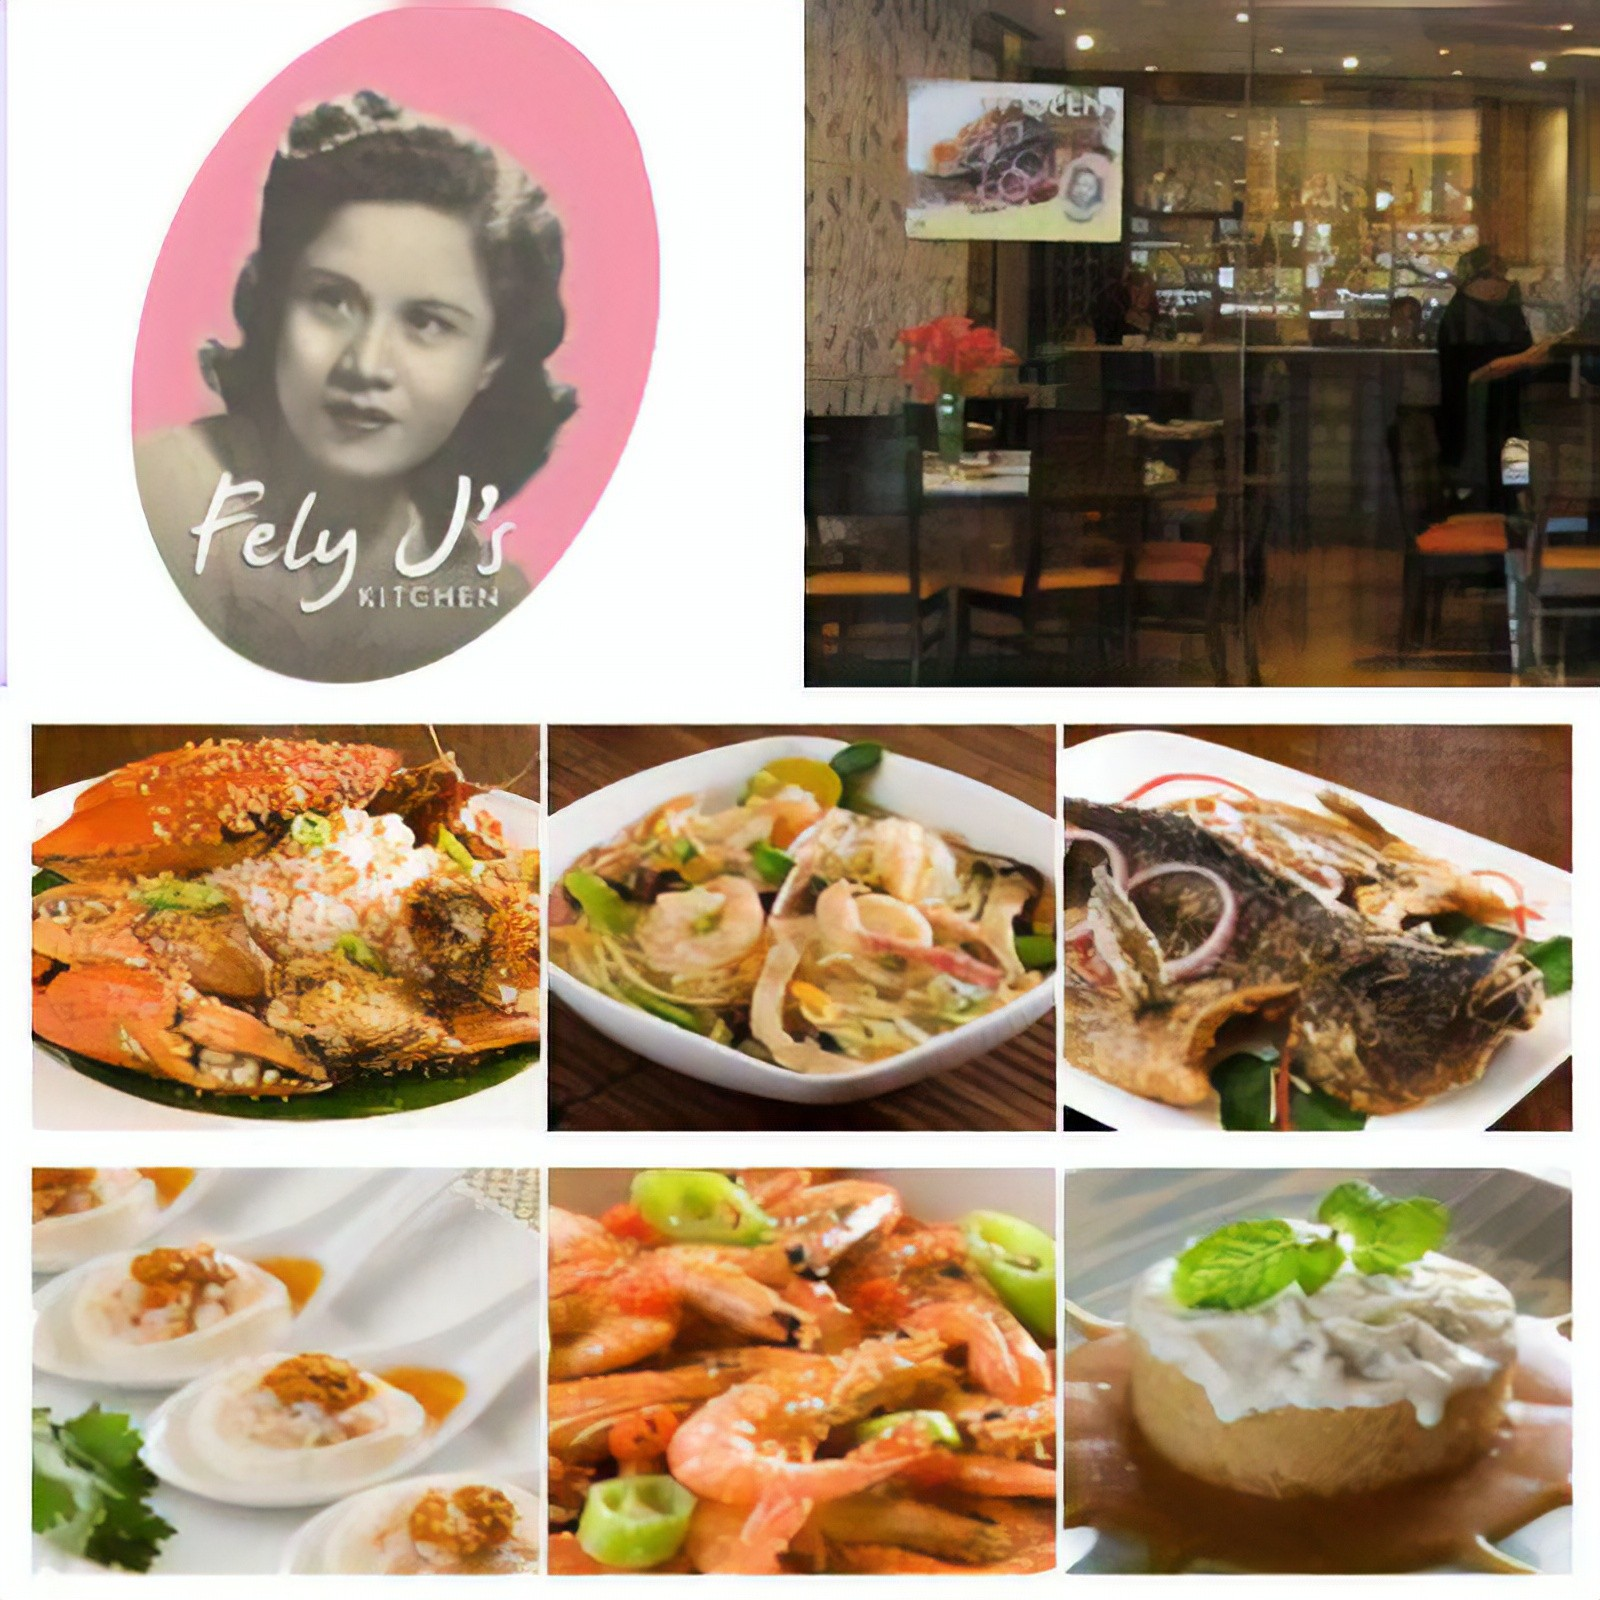 Filgifts.com: Fely Ju0027s Kitchen Gift Certificate Php1,000 (Php1,000) By Fely  J Restaurant   Send Gift Certificate Gifts